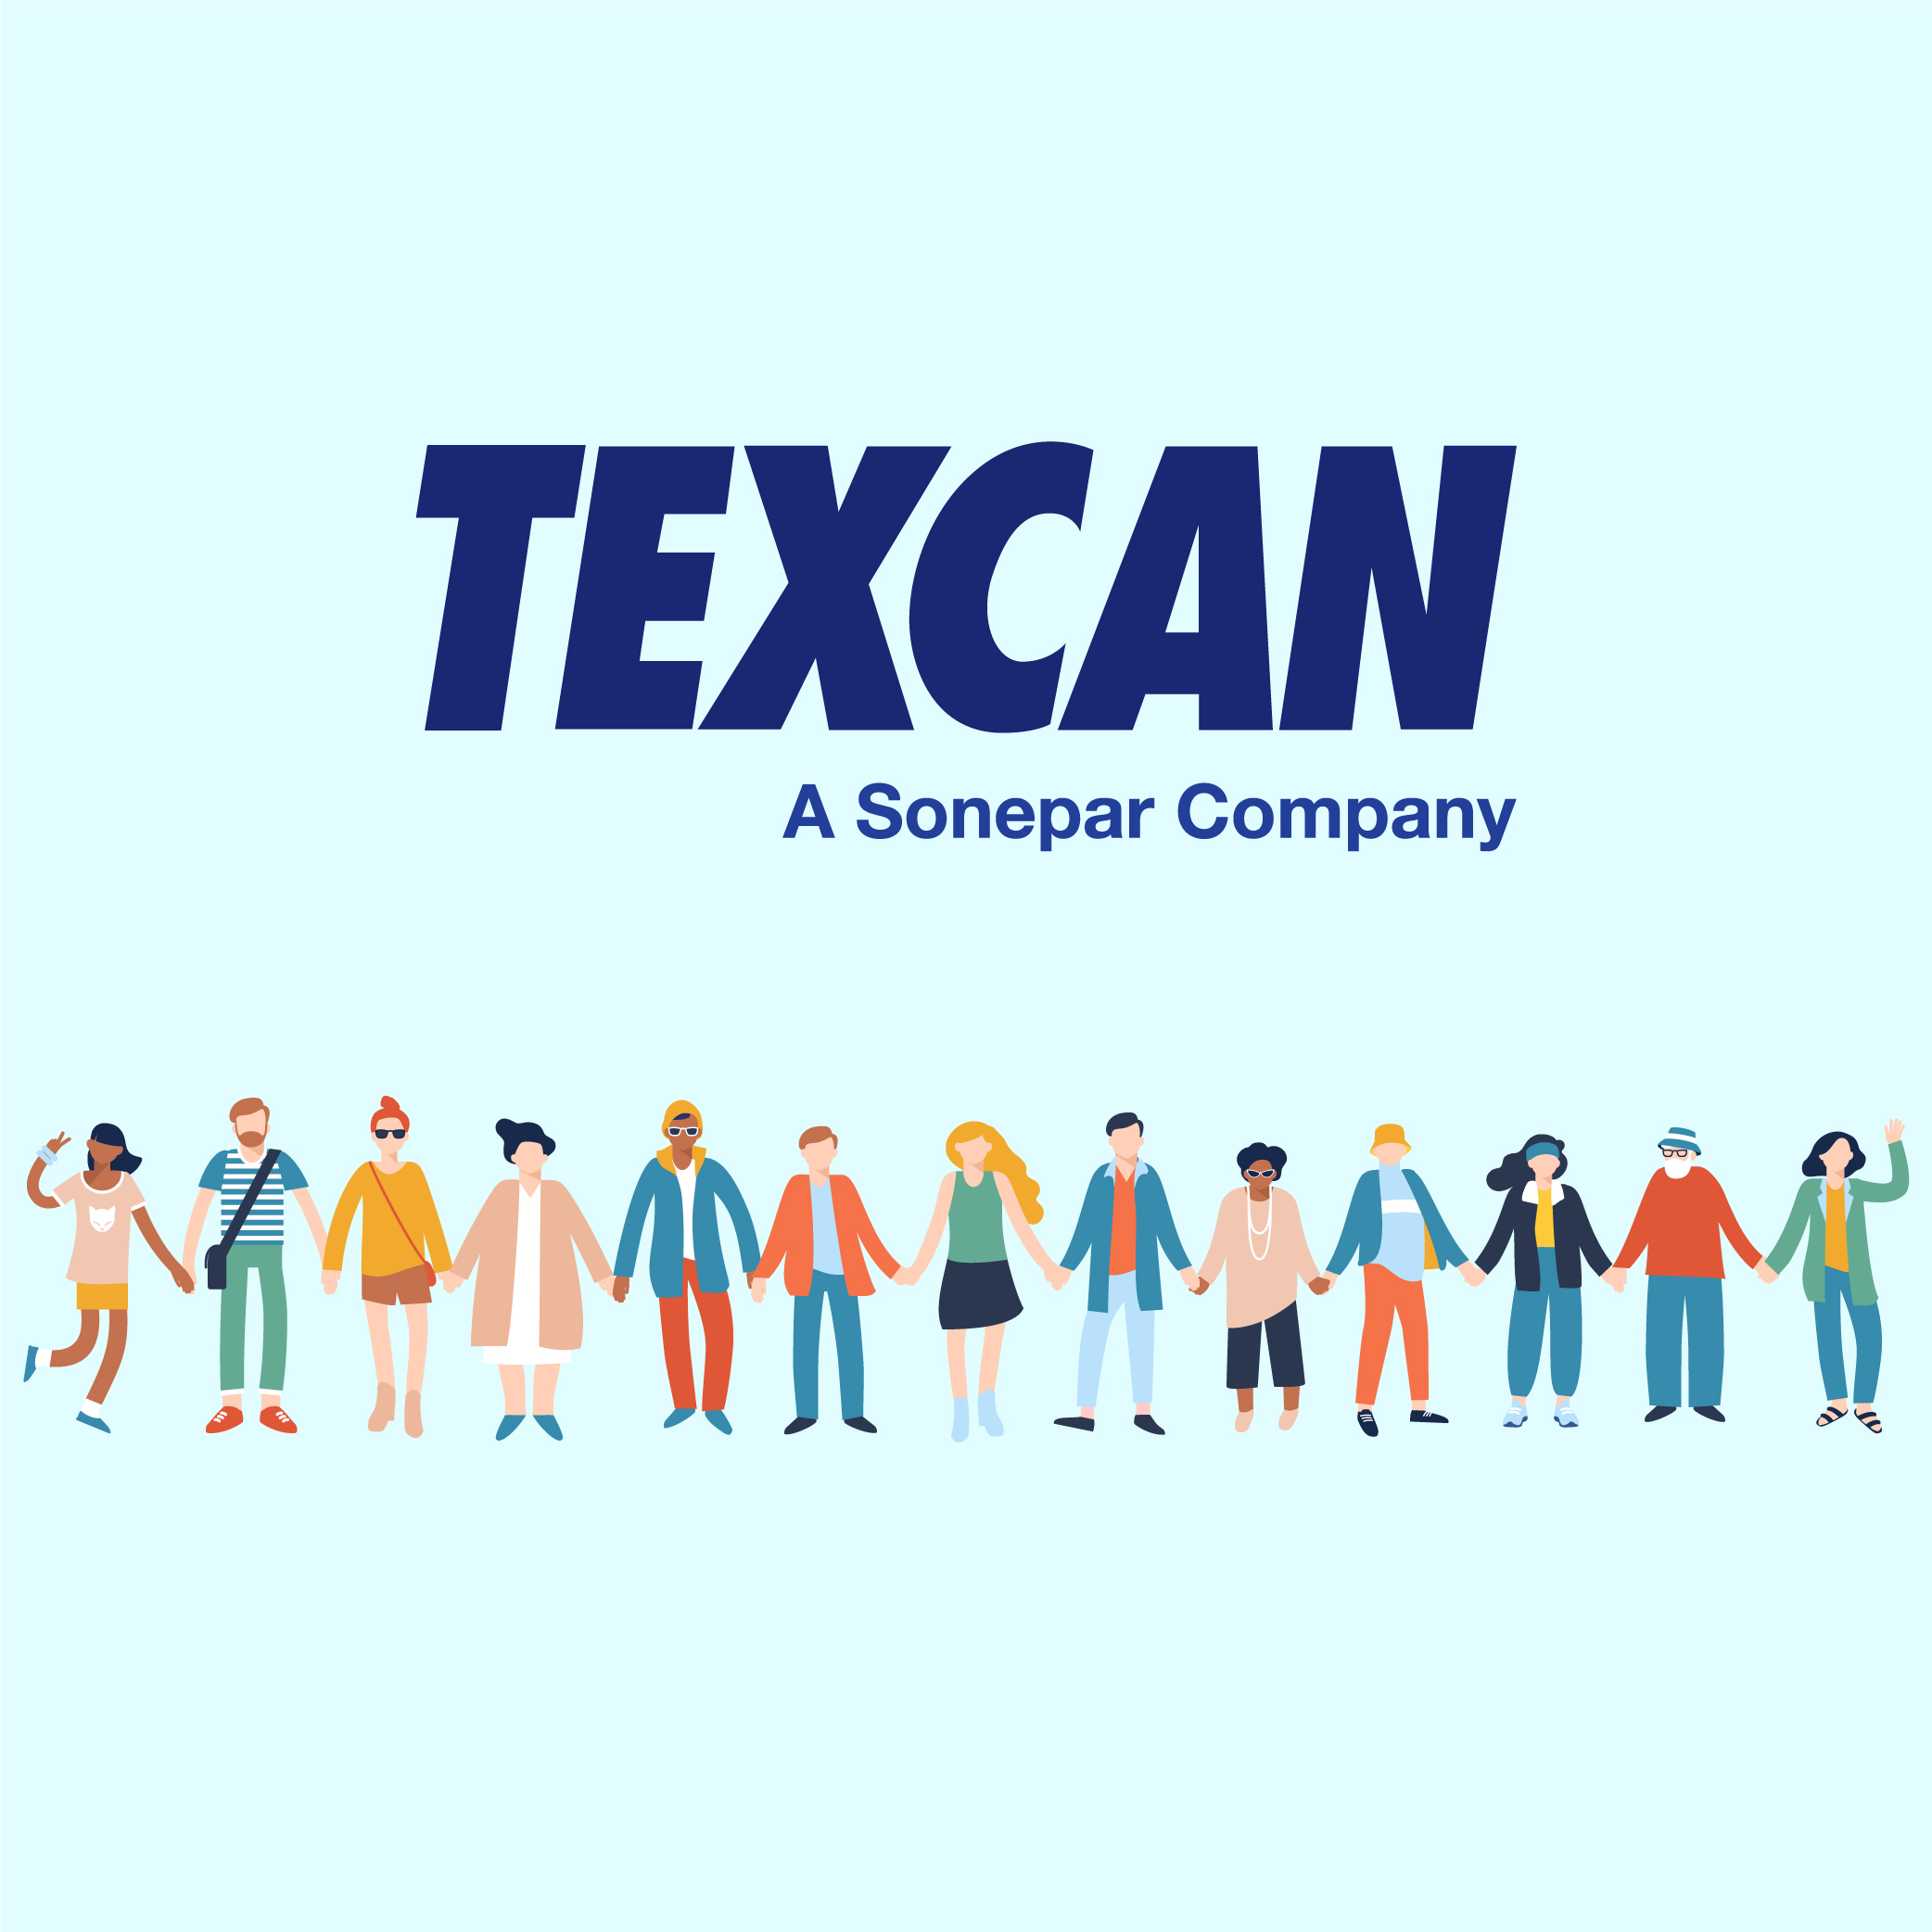 Texcan Raises Money for Charity